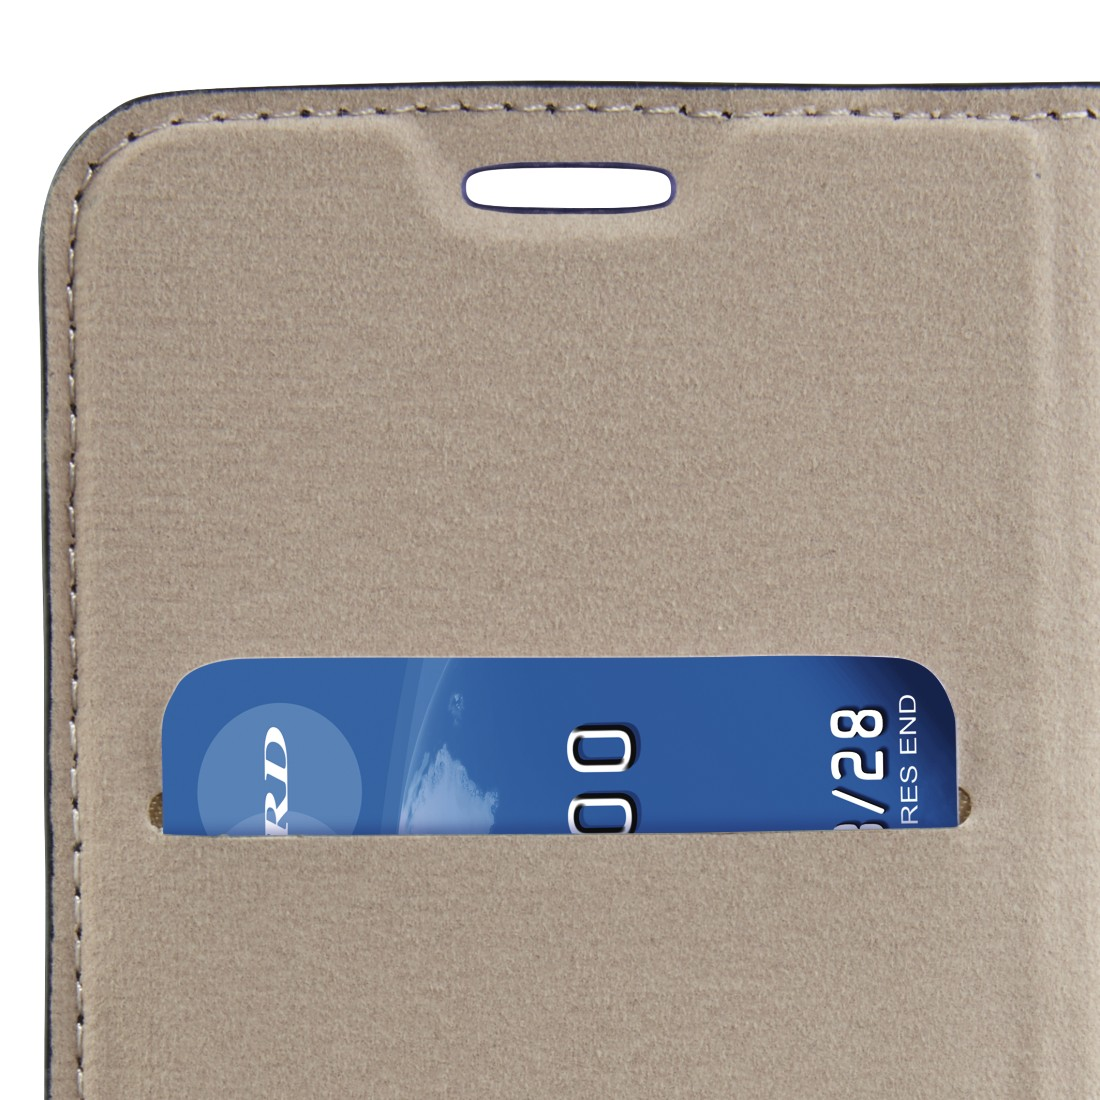 dex Druckfähiges Detail - Hama, Booklet Guard Case für Samsung Galaxy S8, Blau